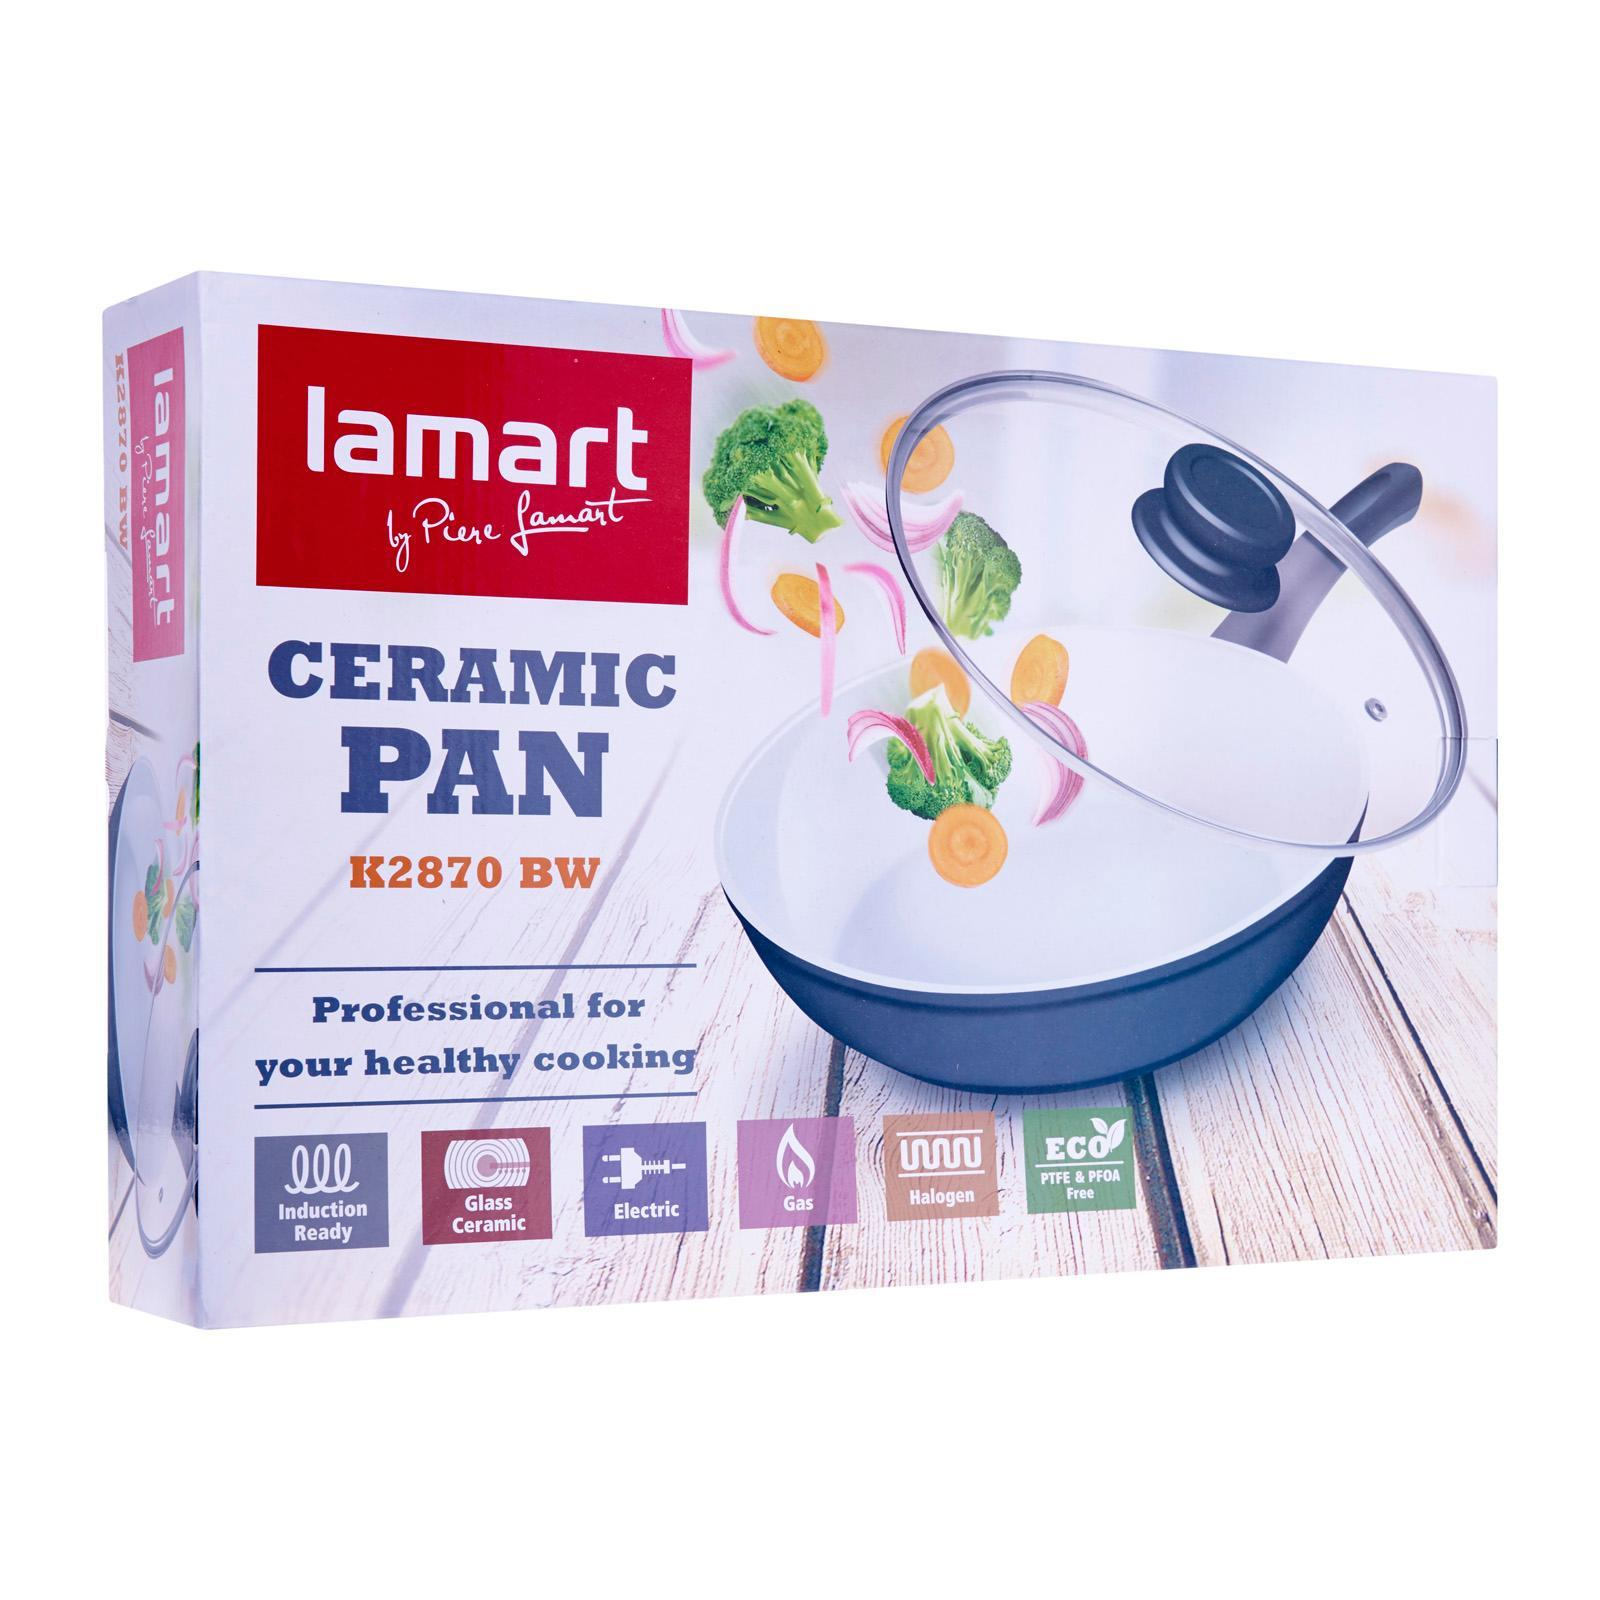 Lamart Induction Ready Ceramic Pan With Glass Lid 28/7Cm